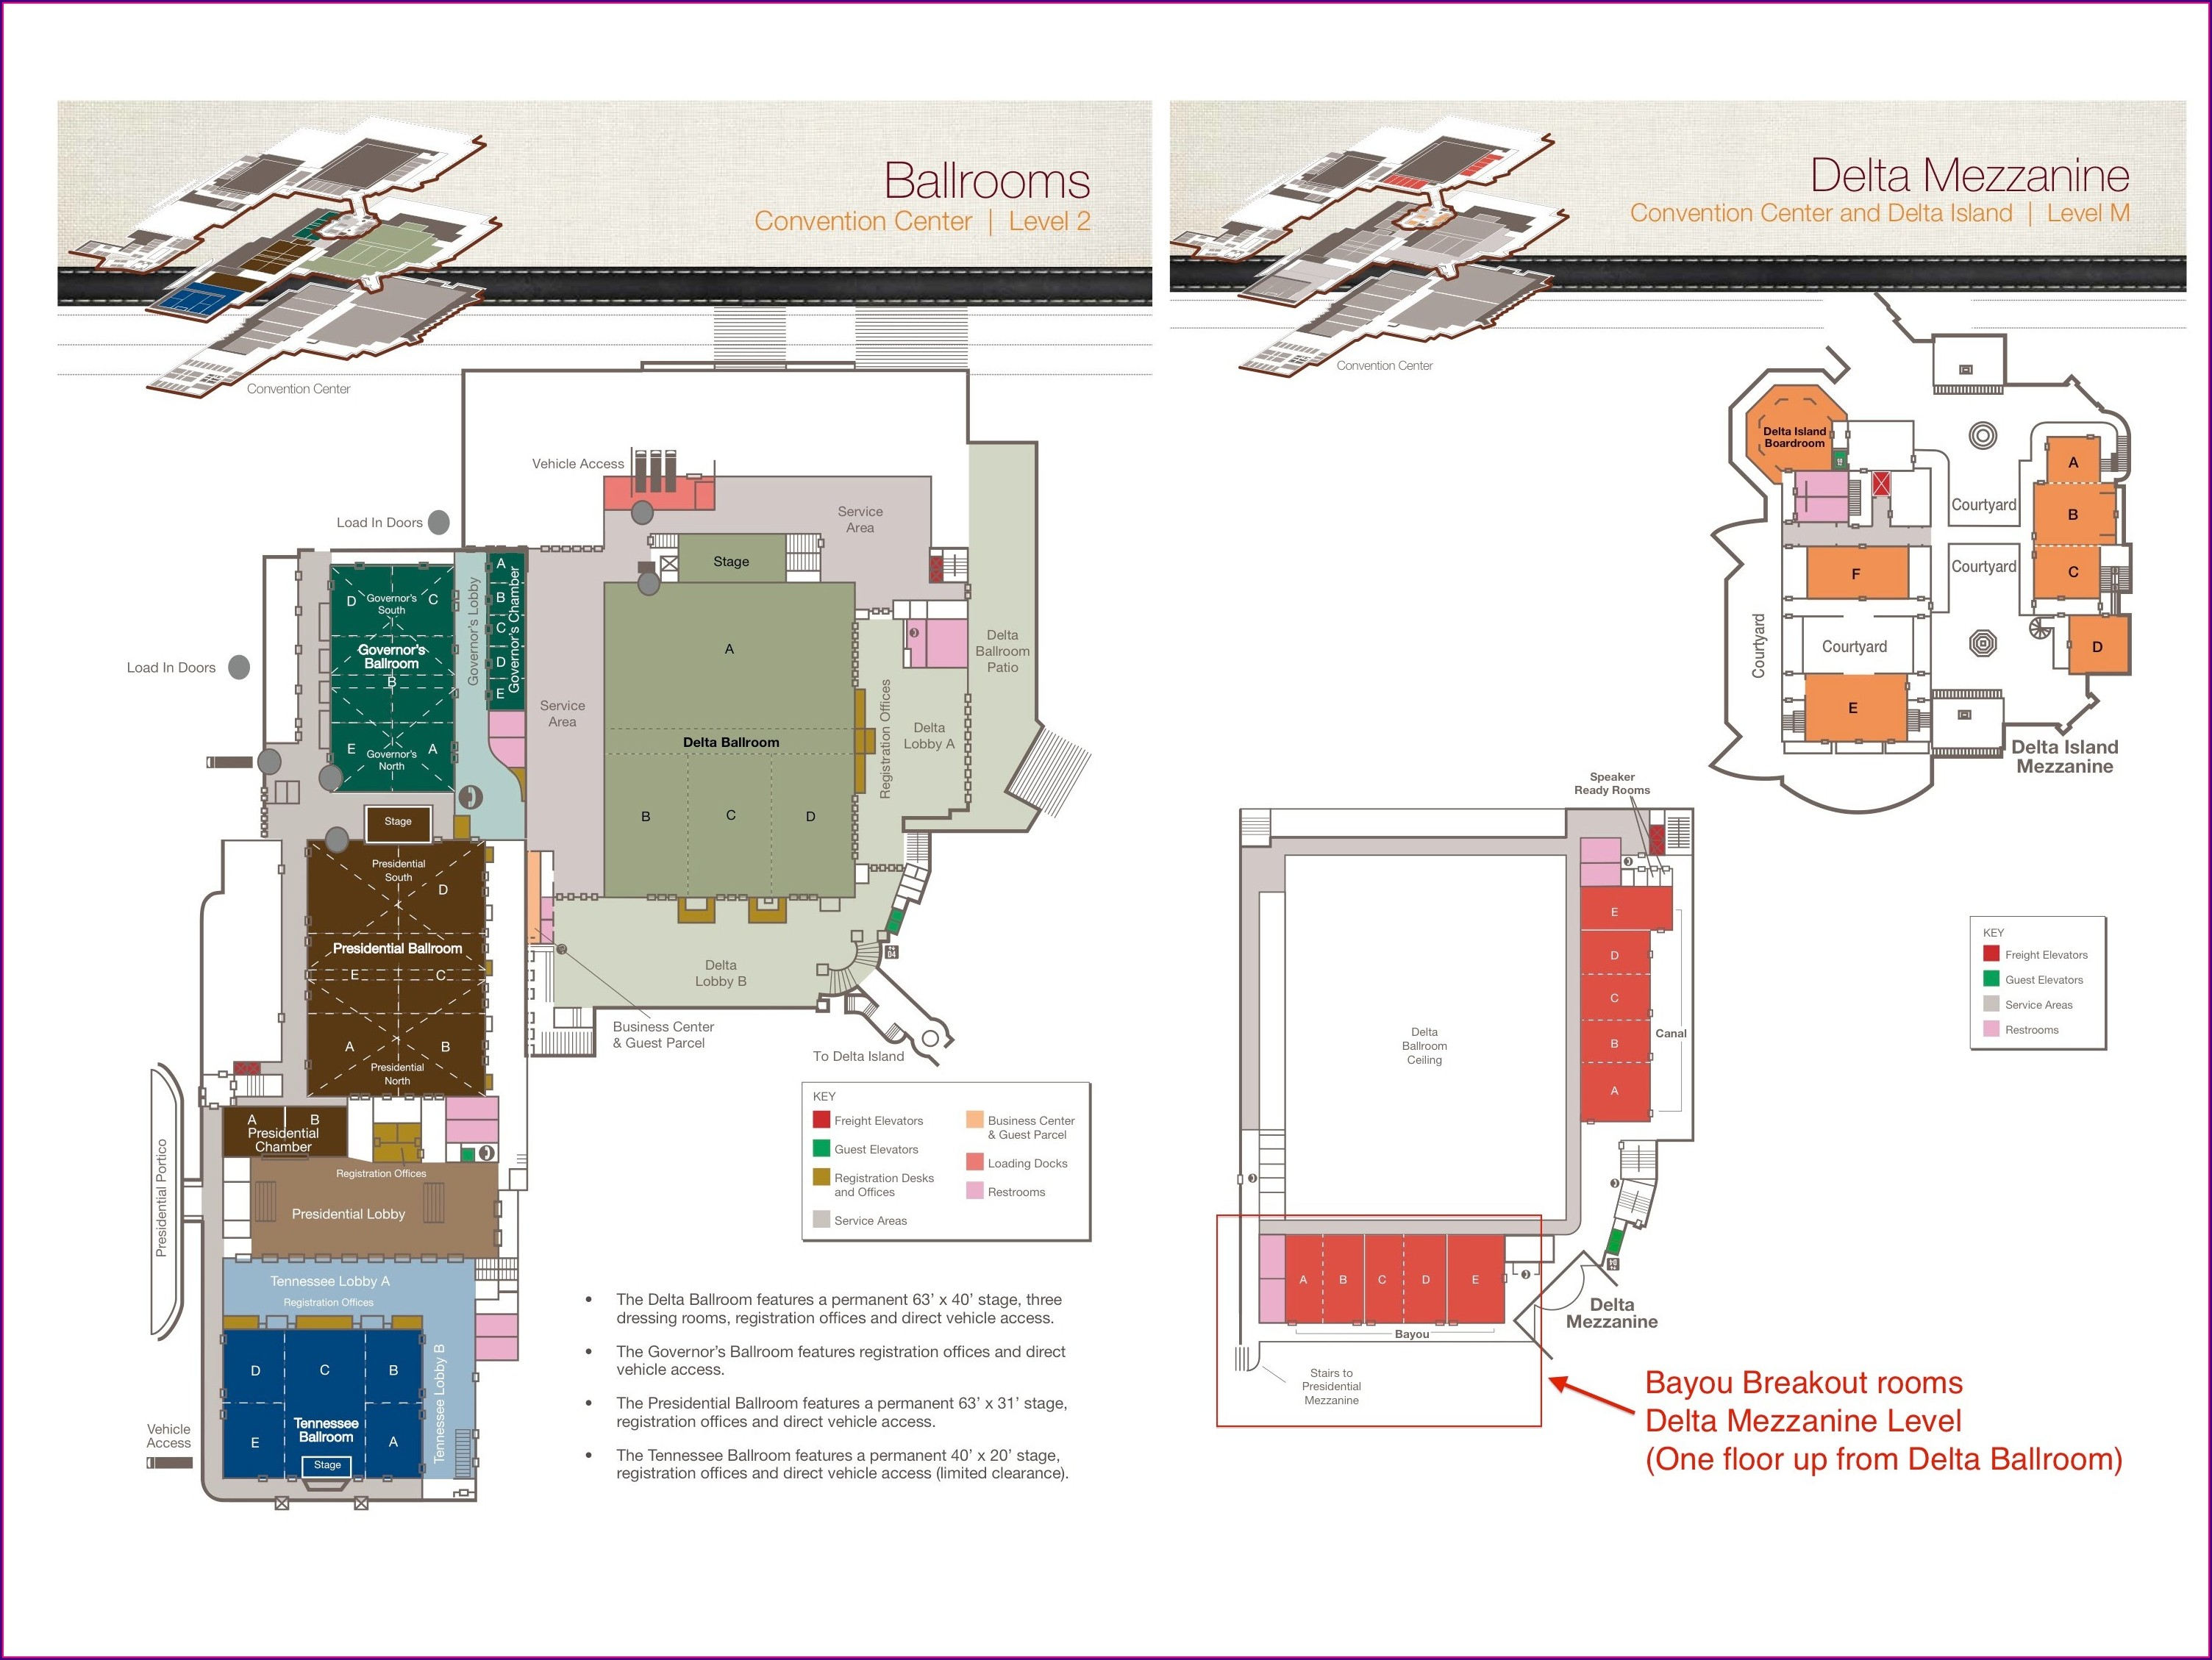 Gaylord Opryland Hotel Map